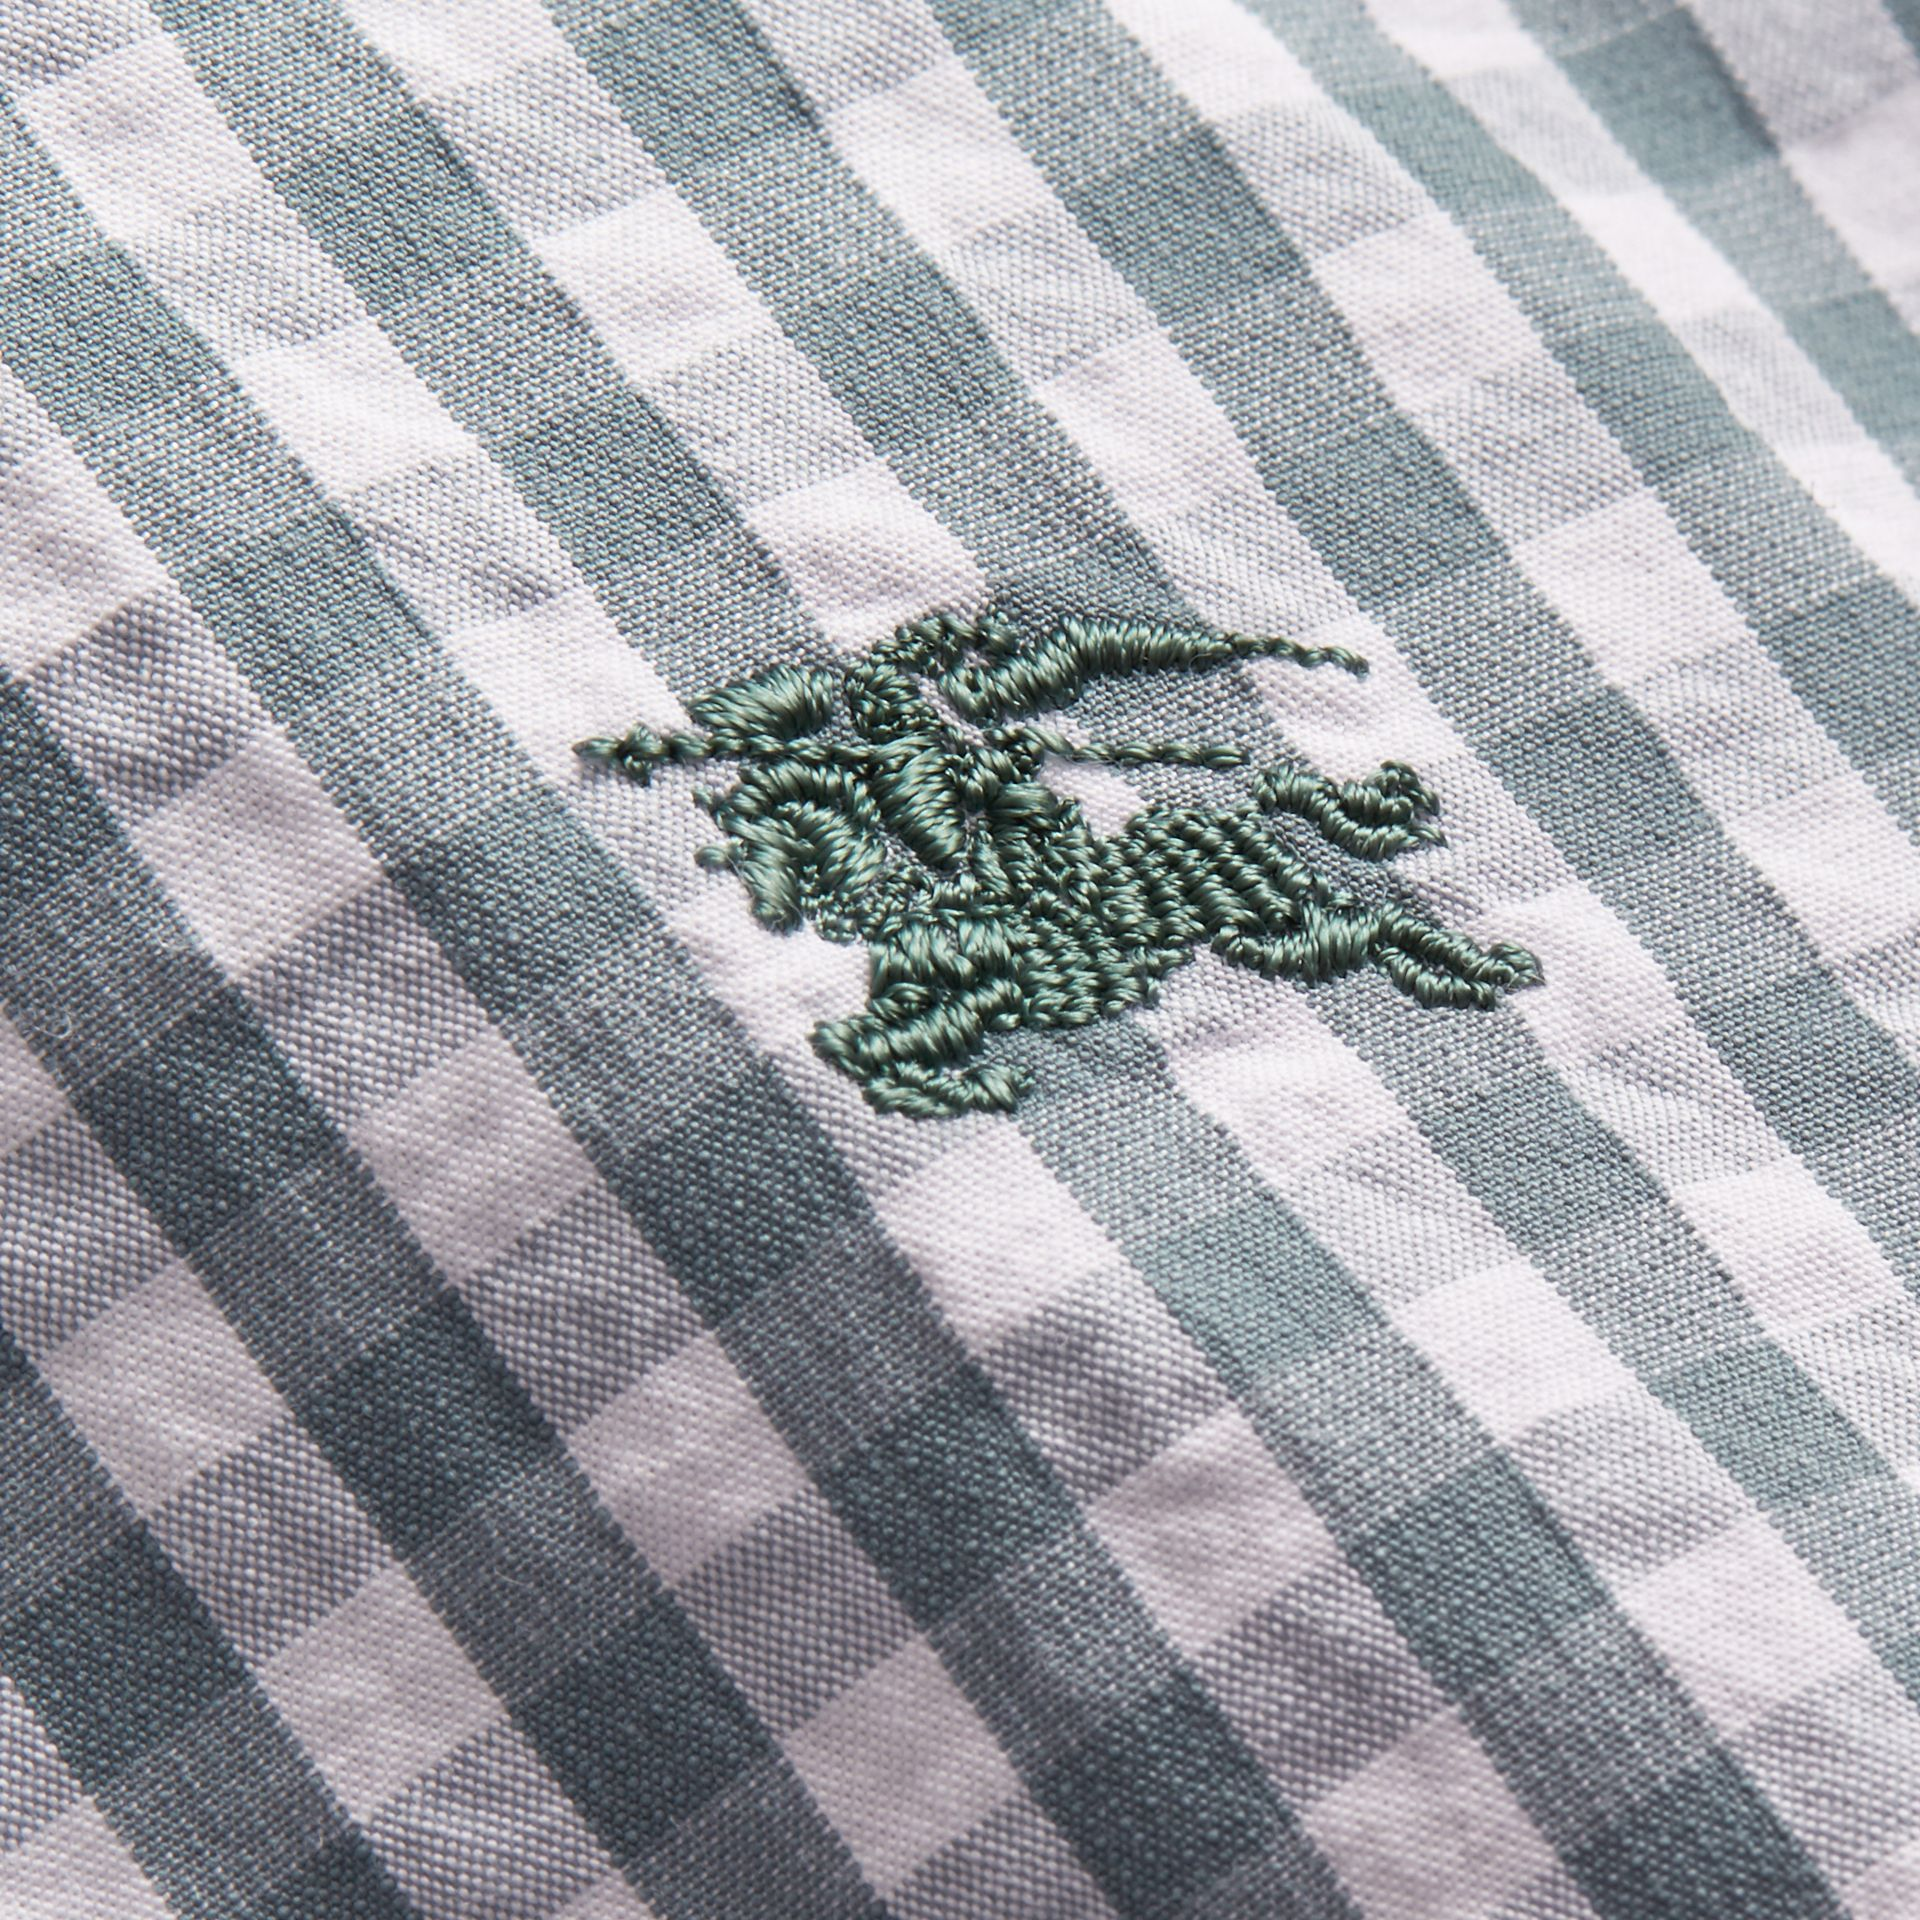 Short-sleeved Gingham Cotton Poplin Shirt in Dusty Teal Blue - Men | Burberry - gallery image 2